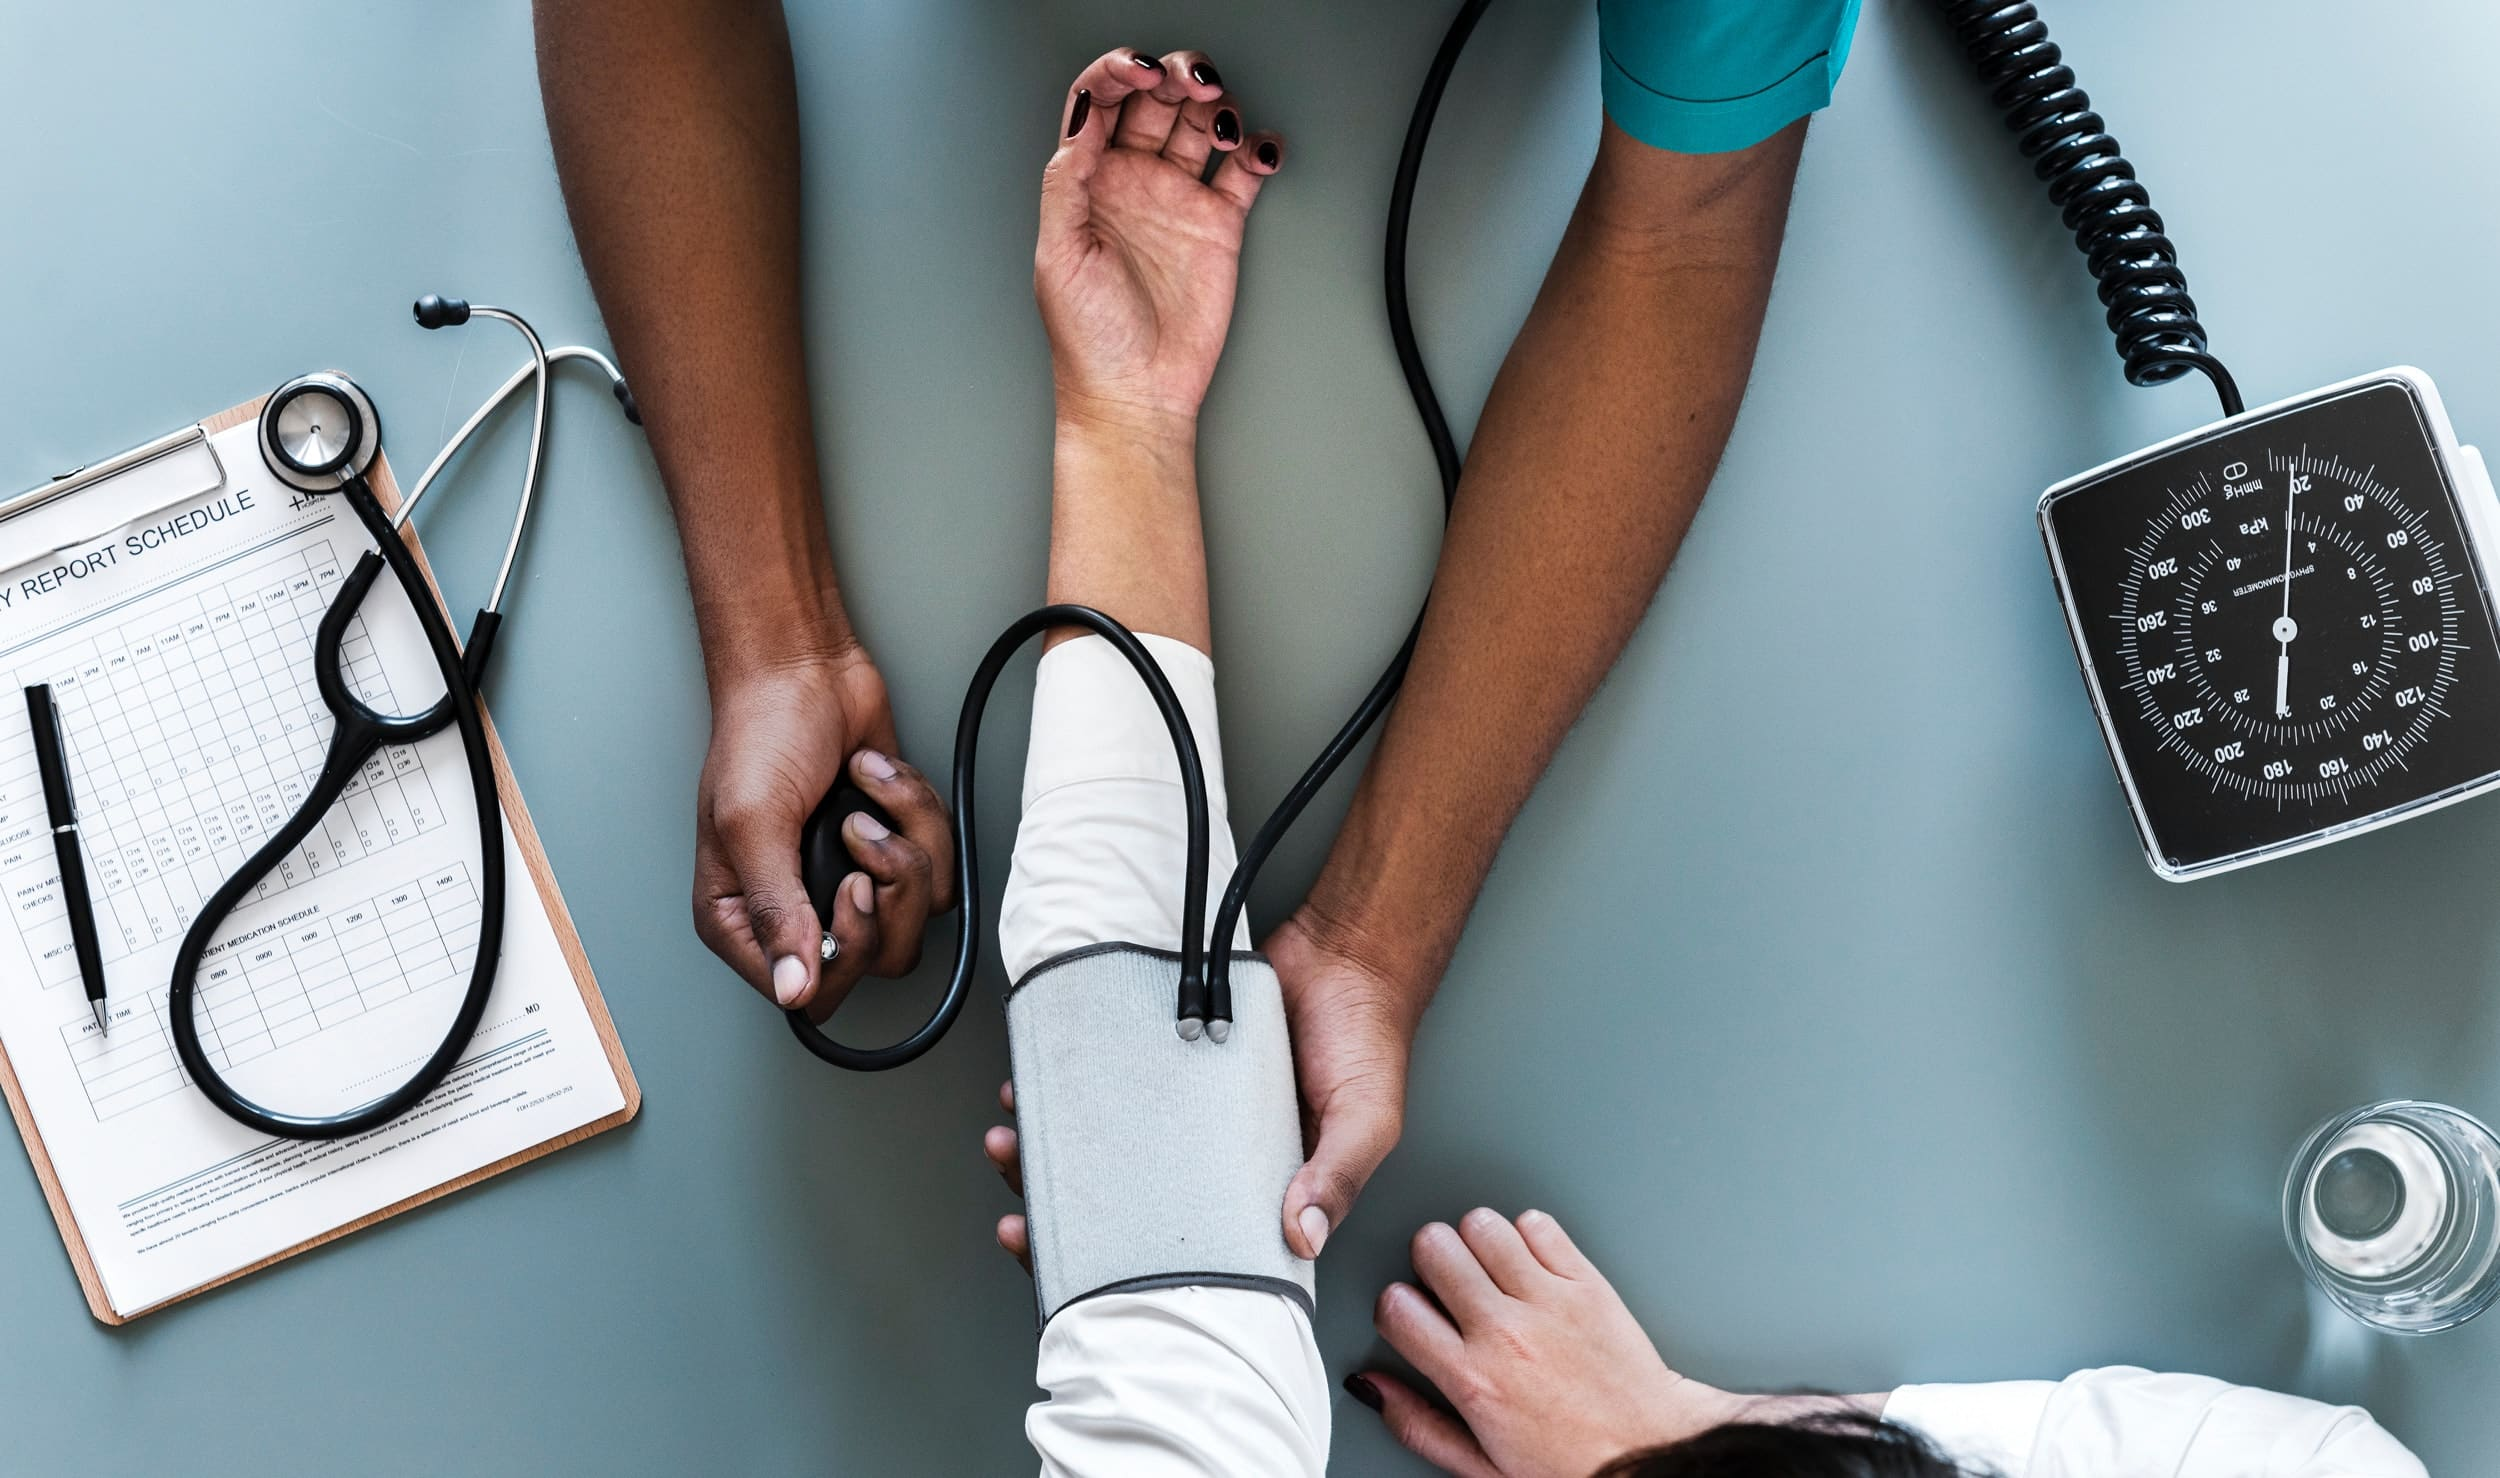 Medical staff checking vitals of a patient